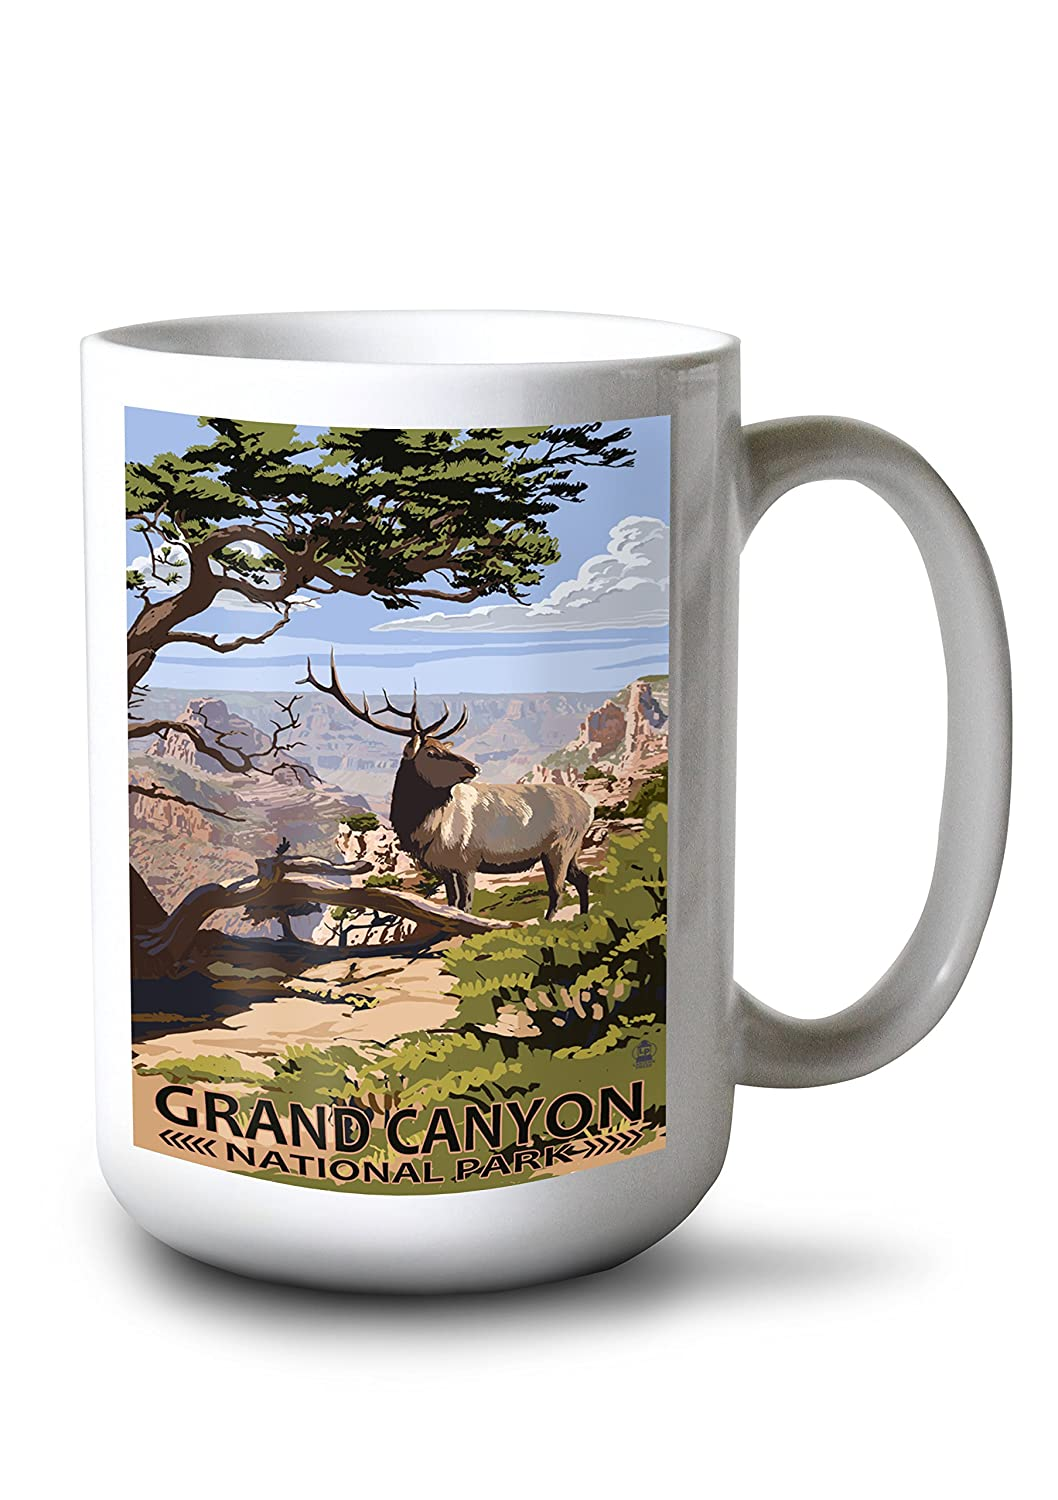 Grand Canyon National Park – Elk and South Rim 15oz Mug LANT-3P-15OZ-WHT-36687 B077RZDMGM  15oz Mug